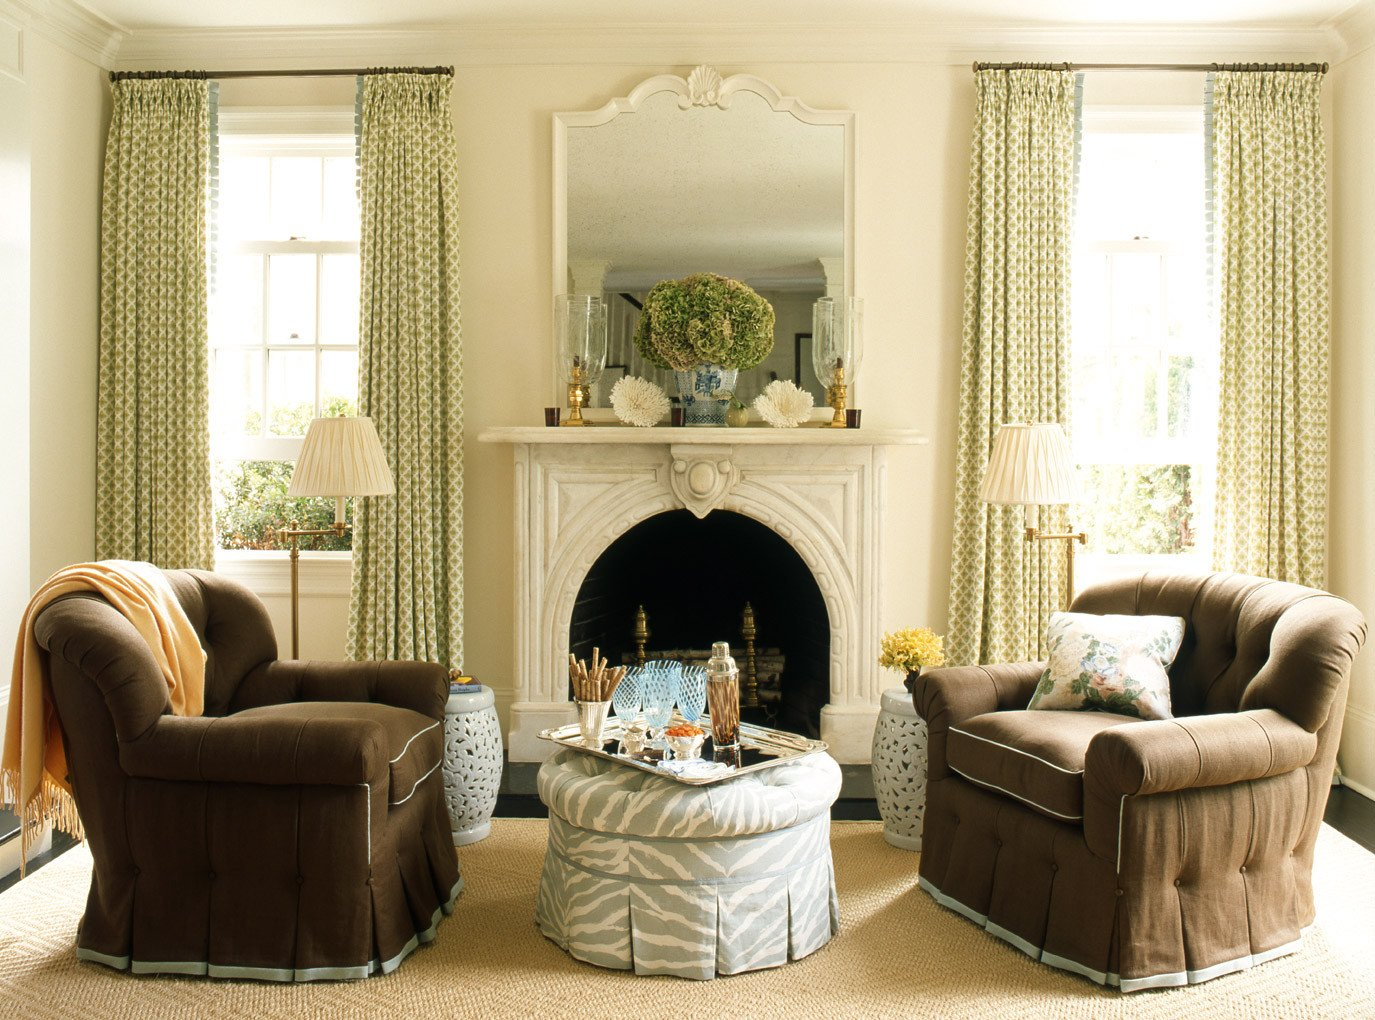 Living Room Traditional Home Fresh How to Decorate Series Finding Your Decorating Style